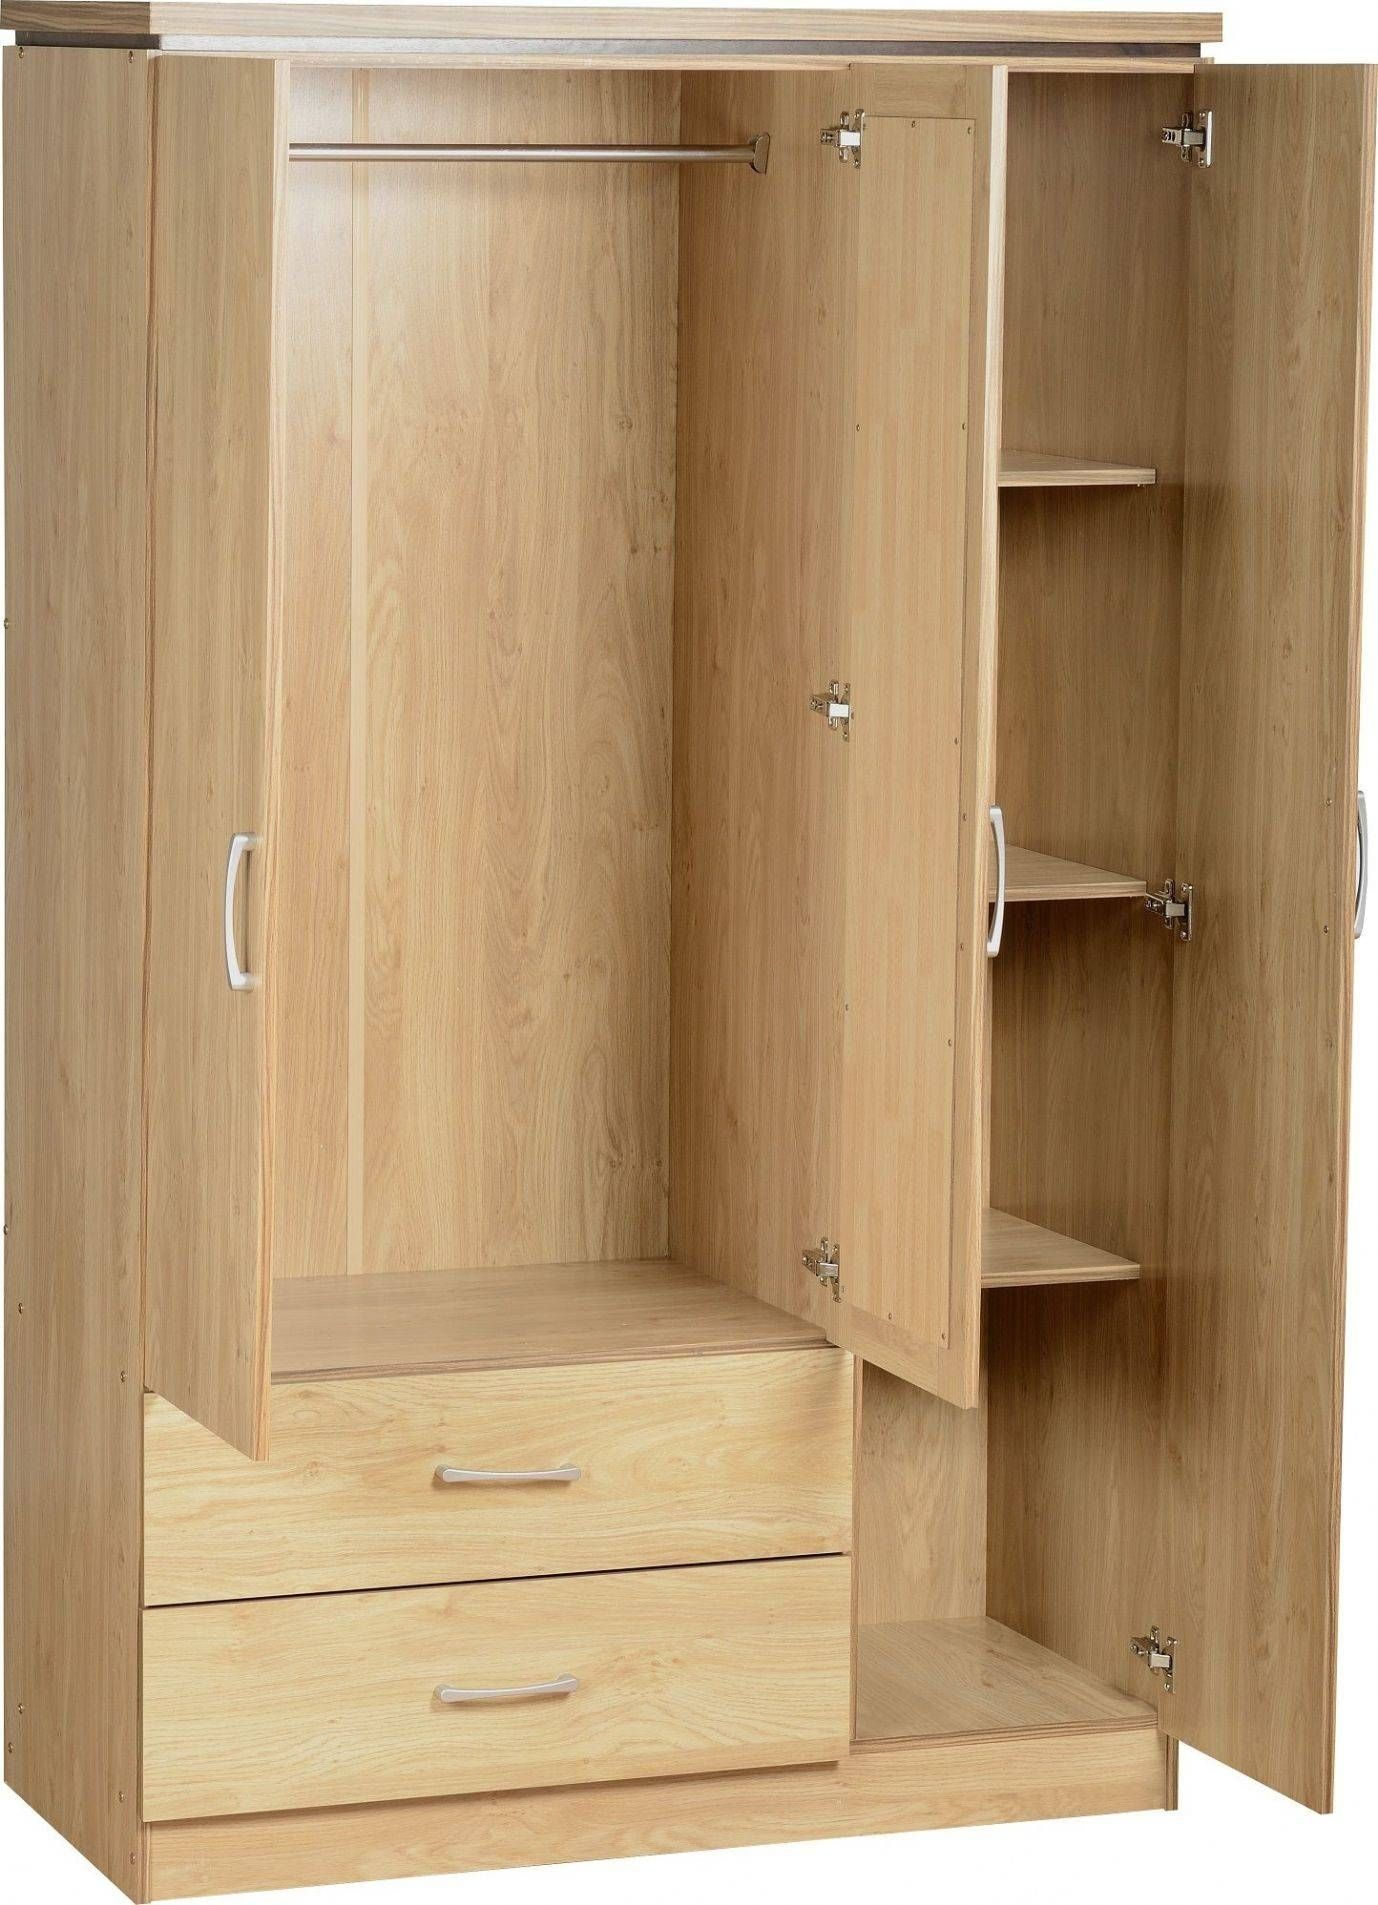 3 Door Wardrobe With Drawers And Shelves For The Home In